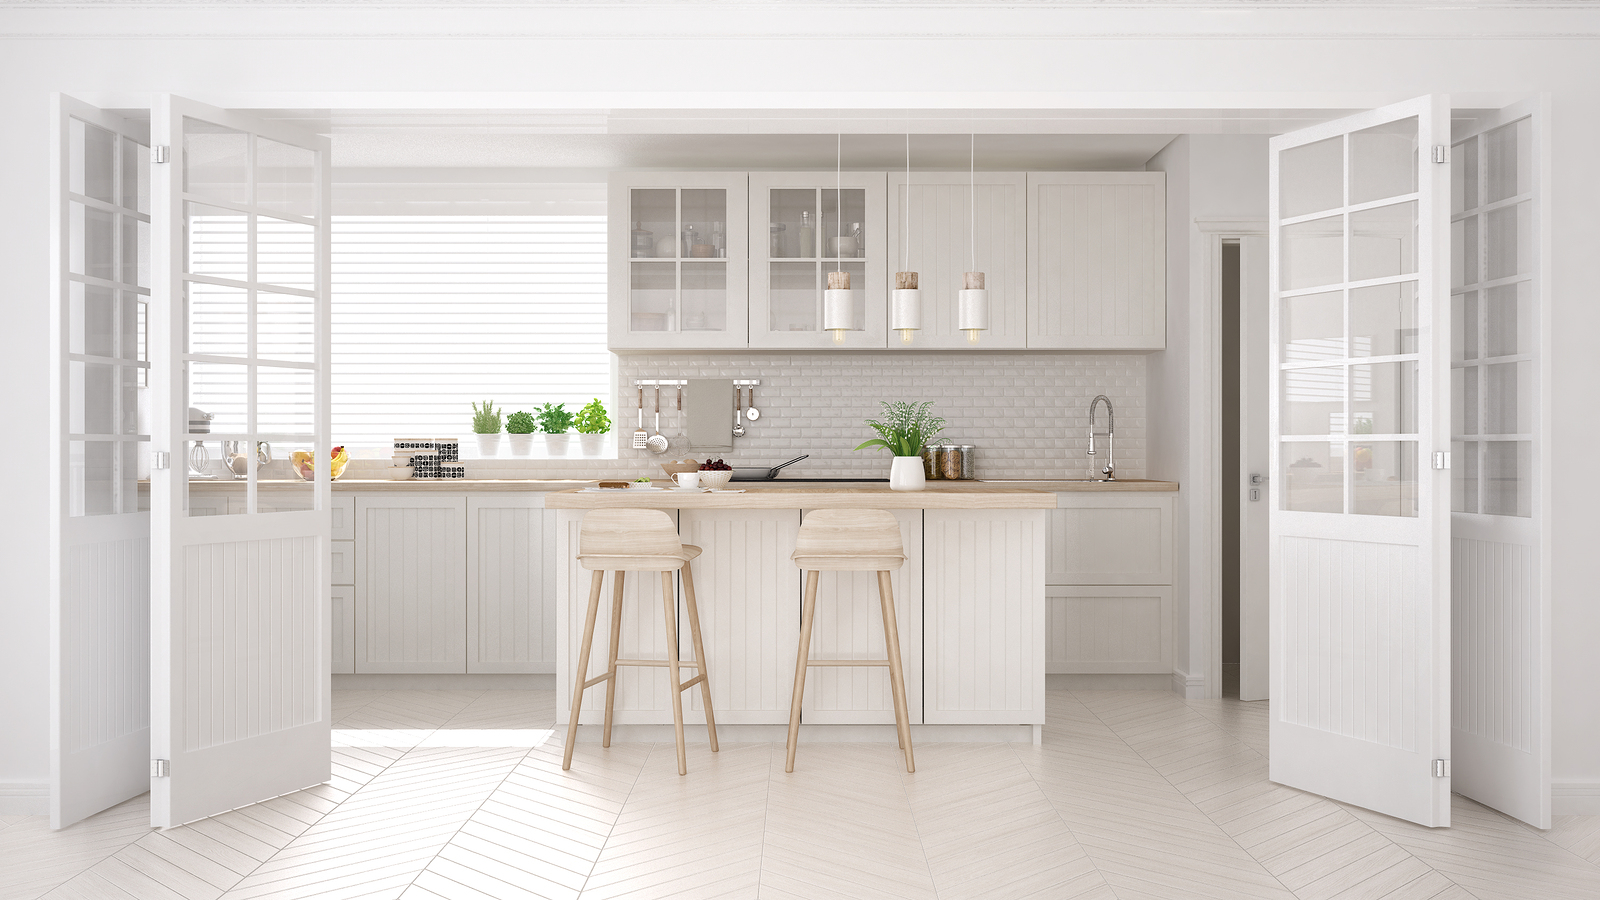 Scandinavian classic kitchen with wooden and white details, minimalistic interior design, 3d illustration